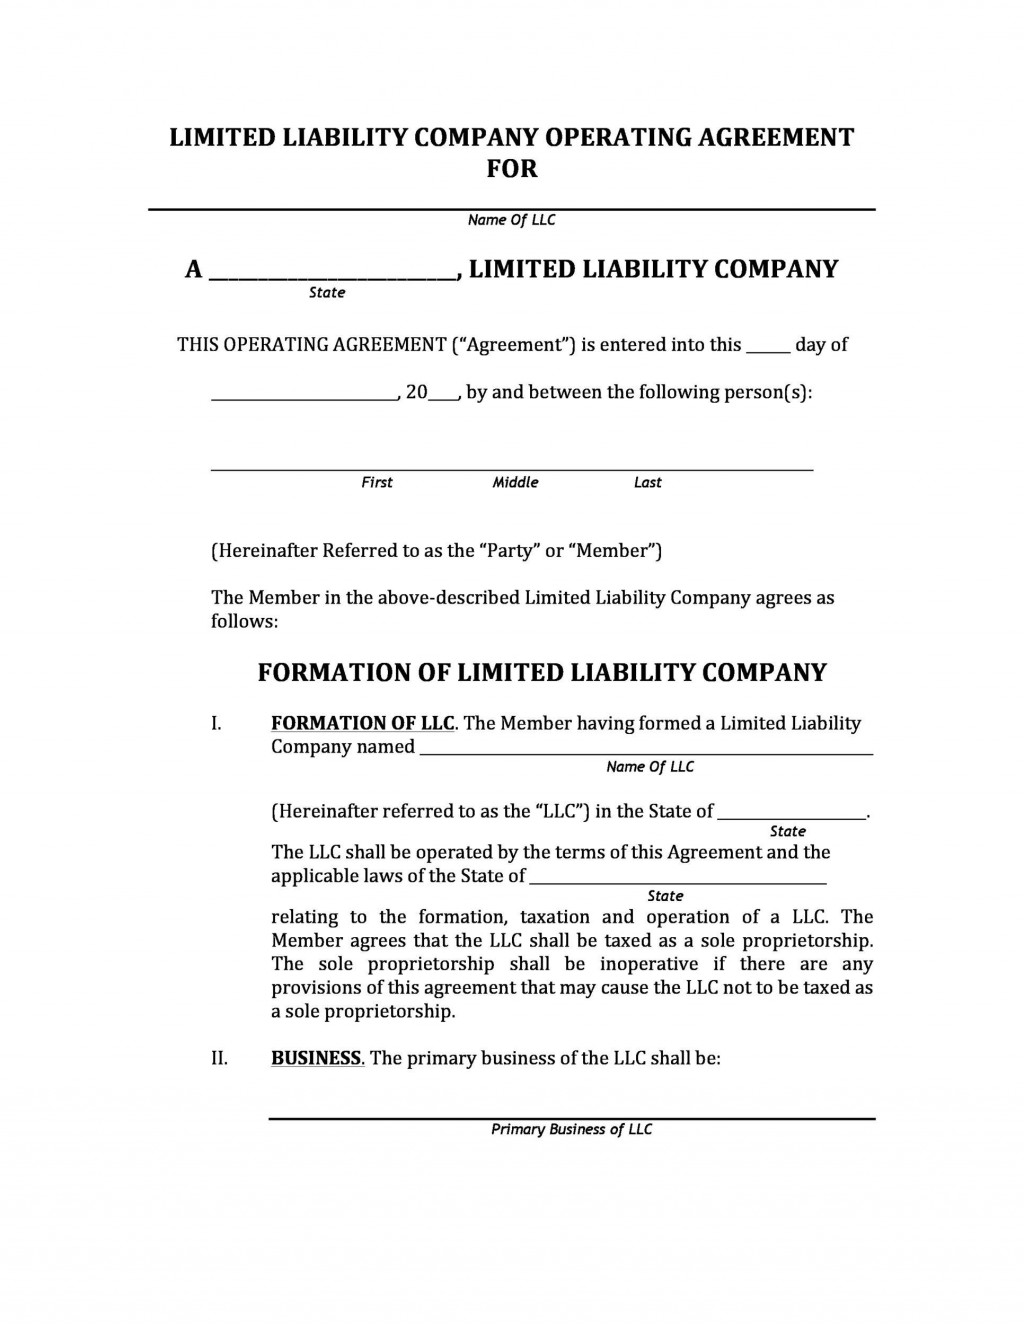 008 Awful Operating Agreement Template For Llc Design  Form Florida TexaLarge